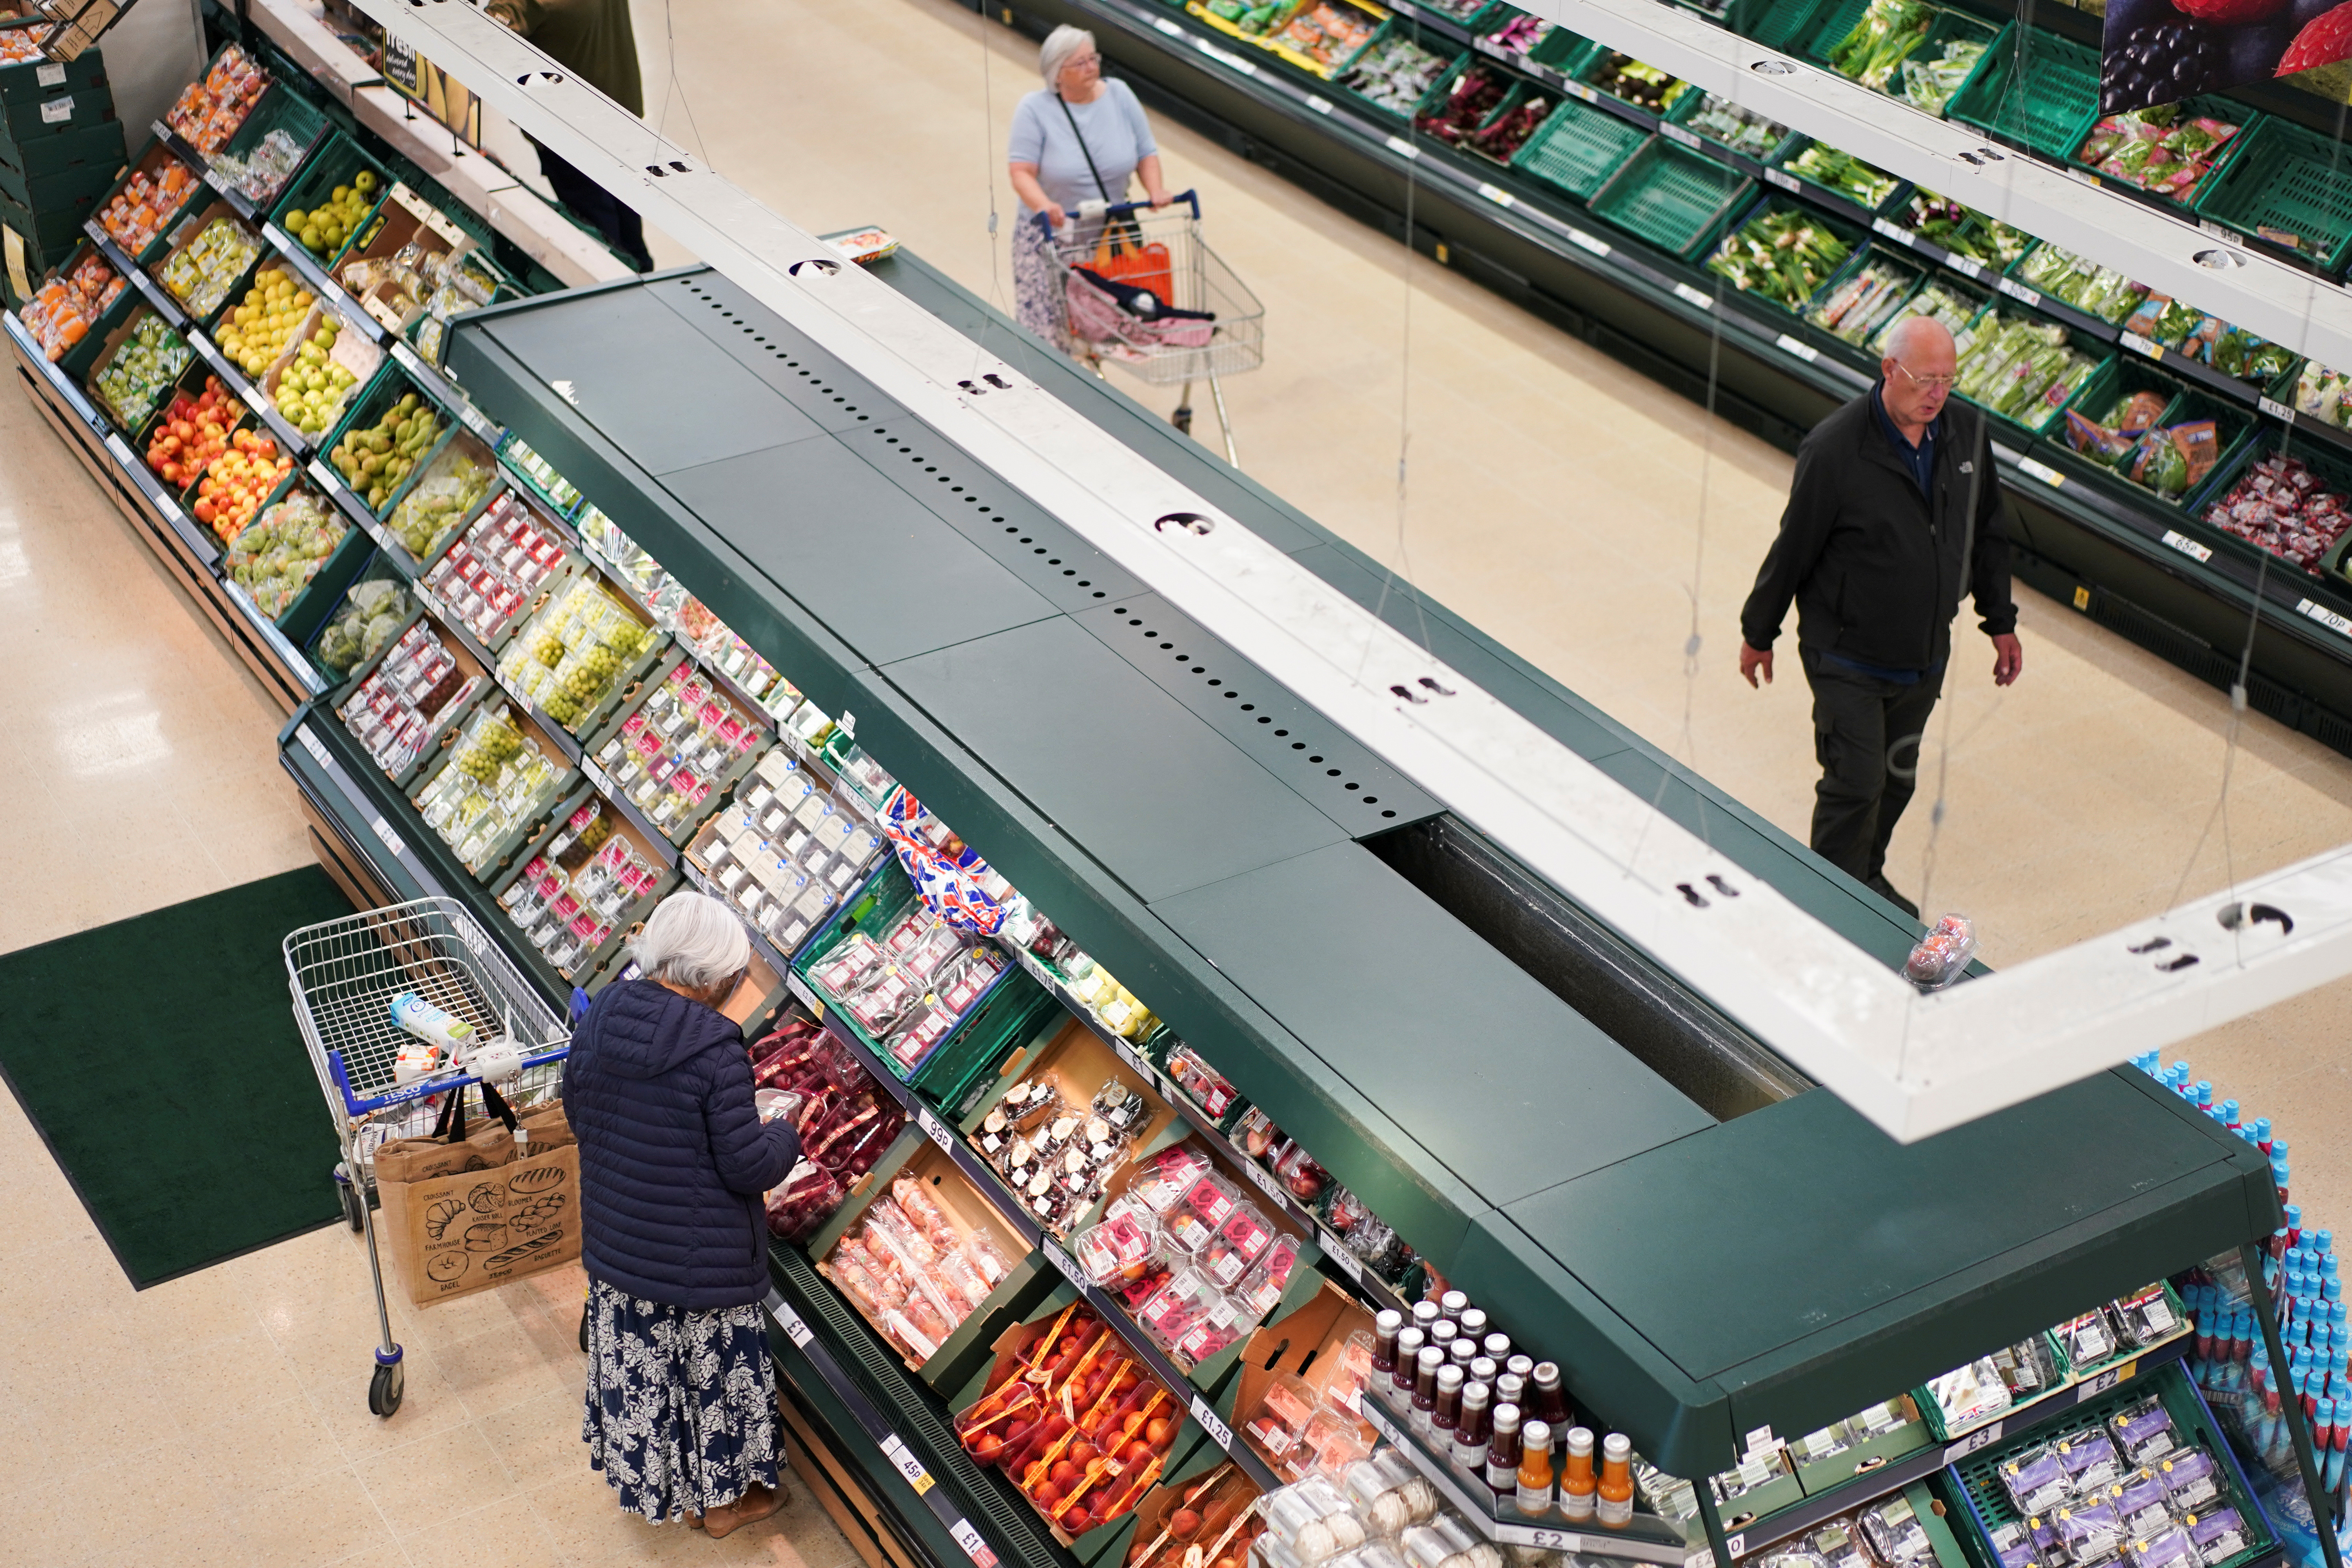 Customers shop for fruit and vegetables inside a supermarket in London, Britain August 7, 2019